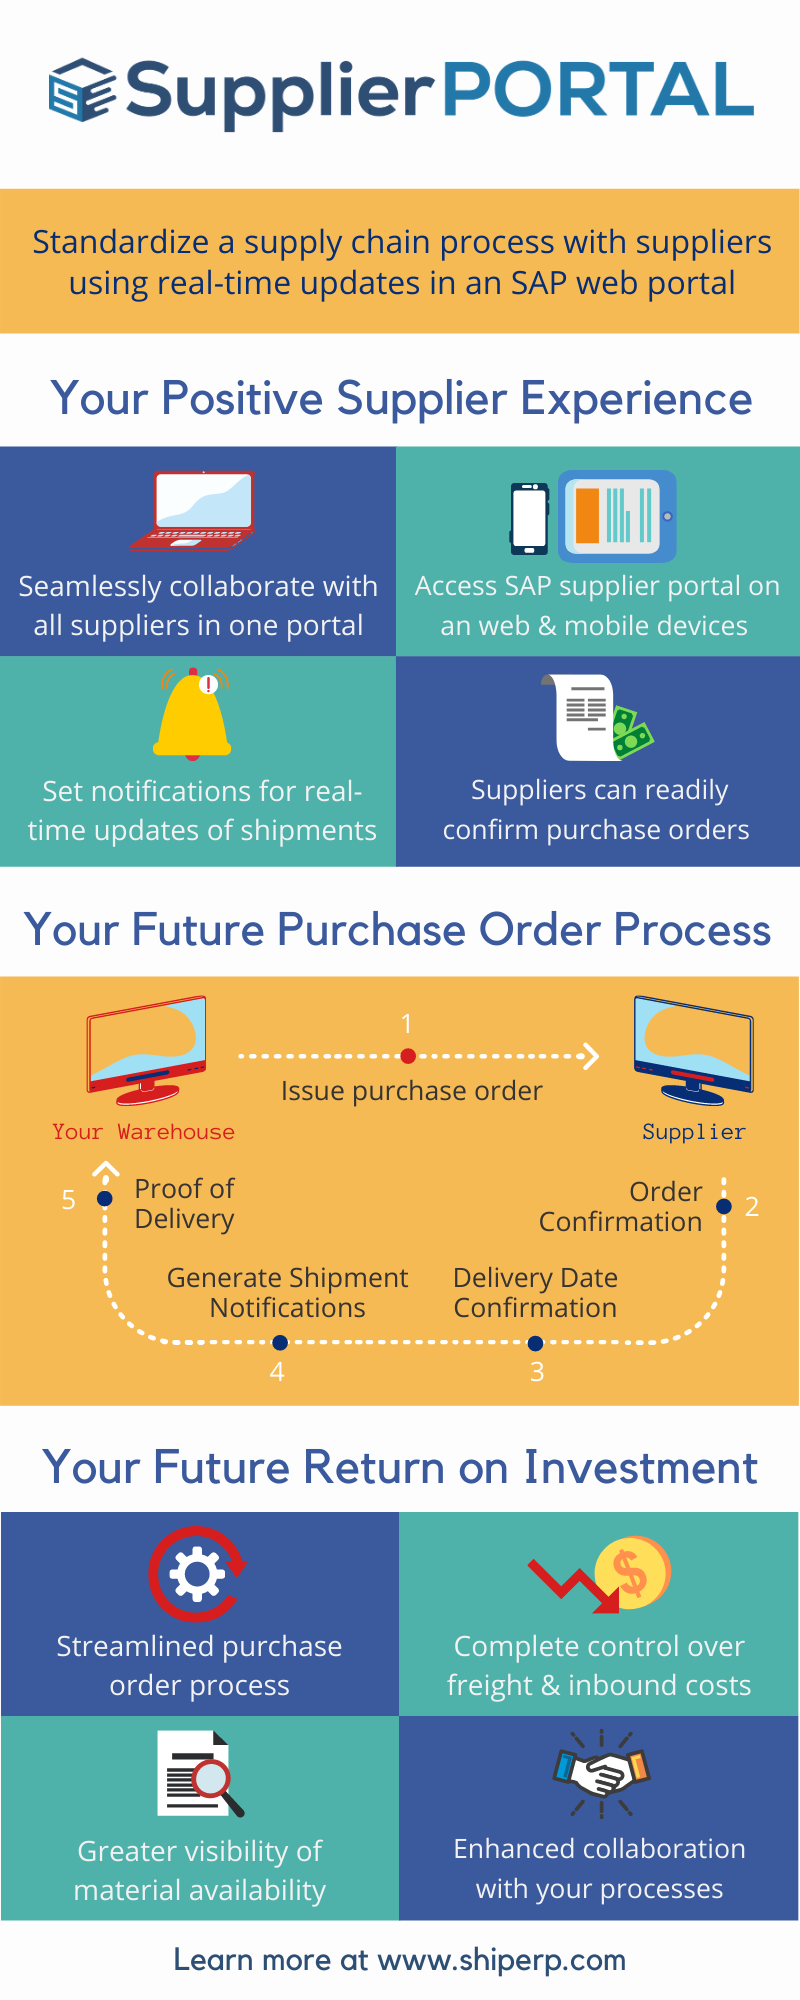 SupplierPORTAL Infographic